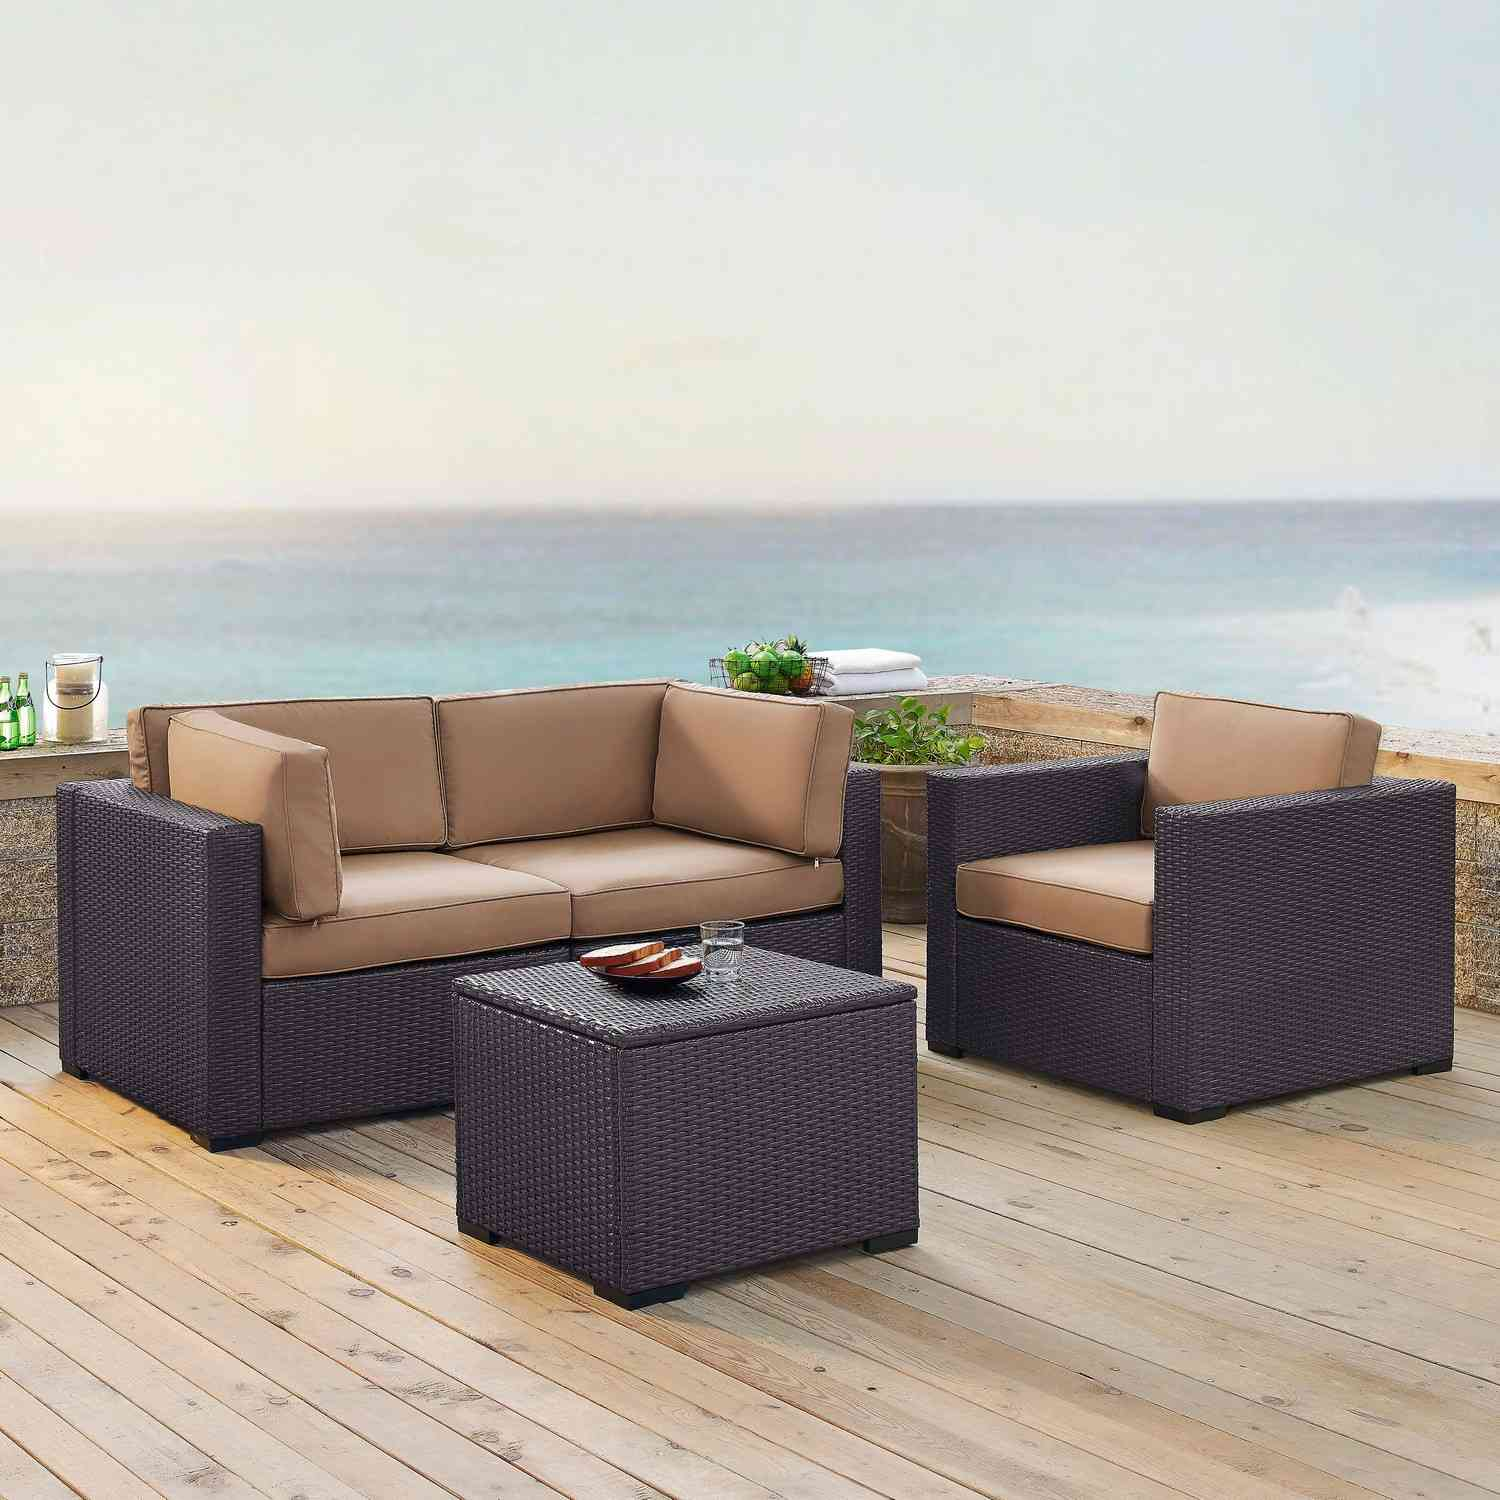 Crosley Biscayne 4-PC Outdoor Wicker Sectional Set - 2 Corner Chairs, Arm Chair, Coffee Table - Mocha/Brown